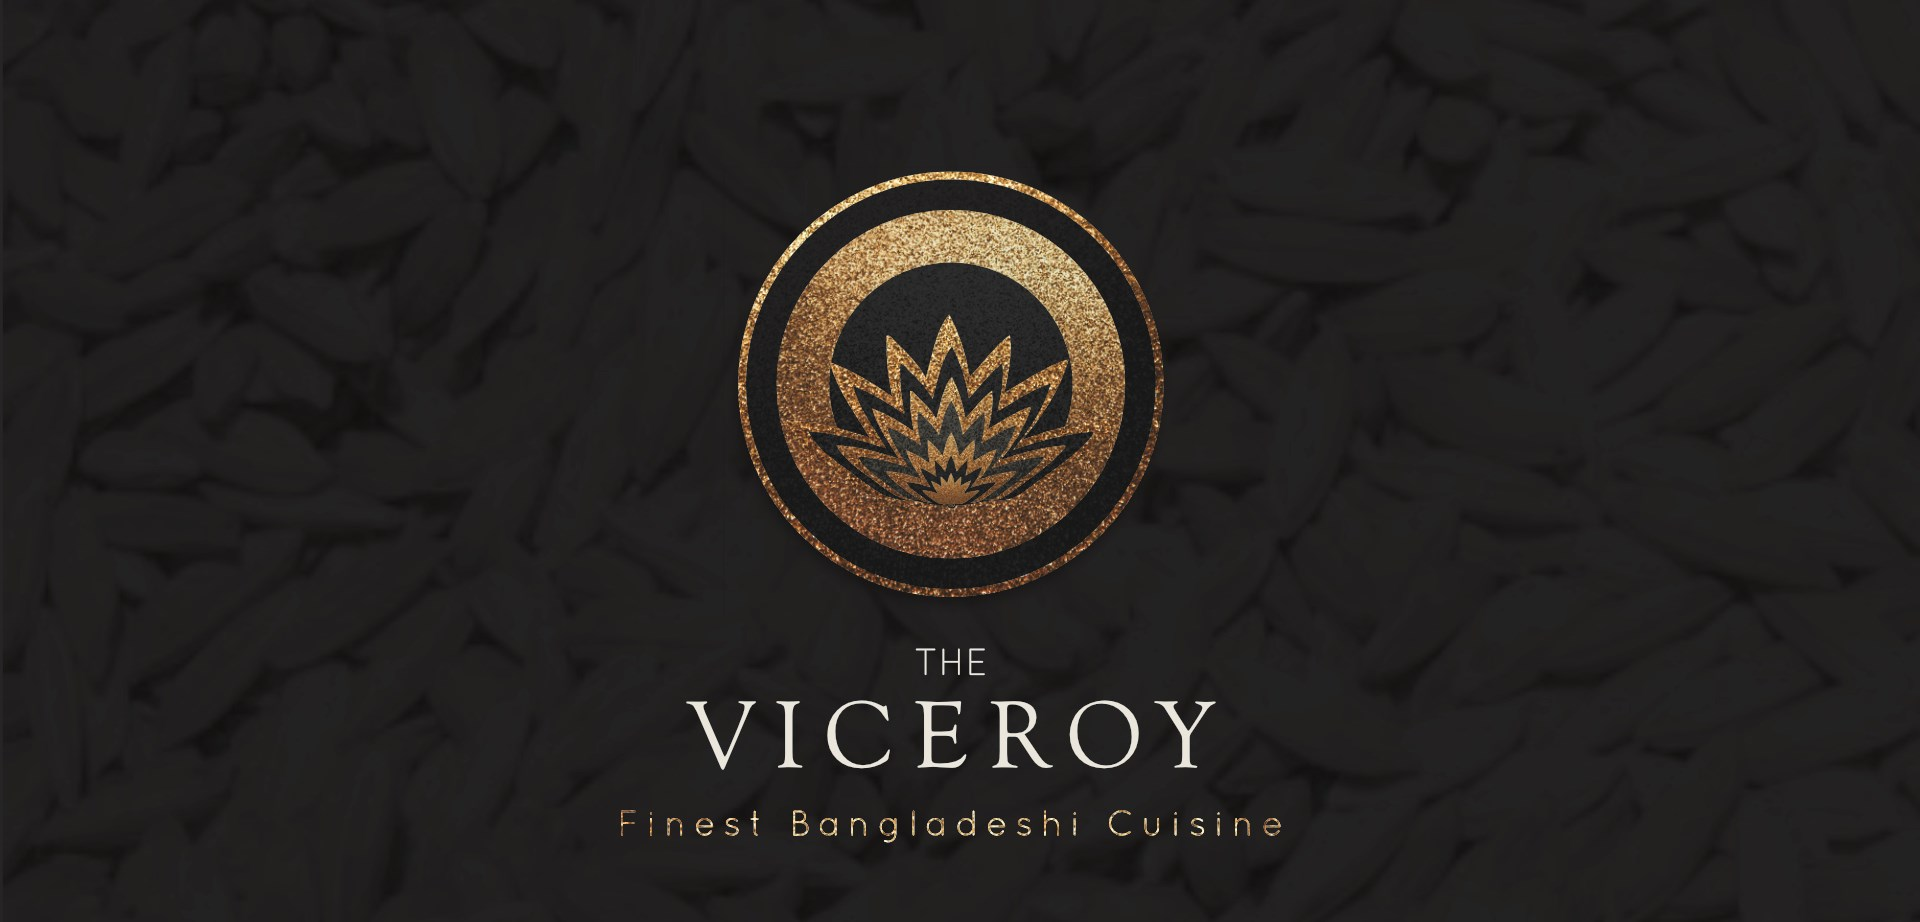 The Viceroy Indian Restaurant in Carlisle